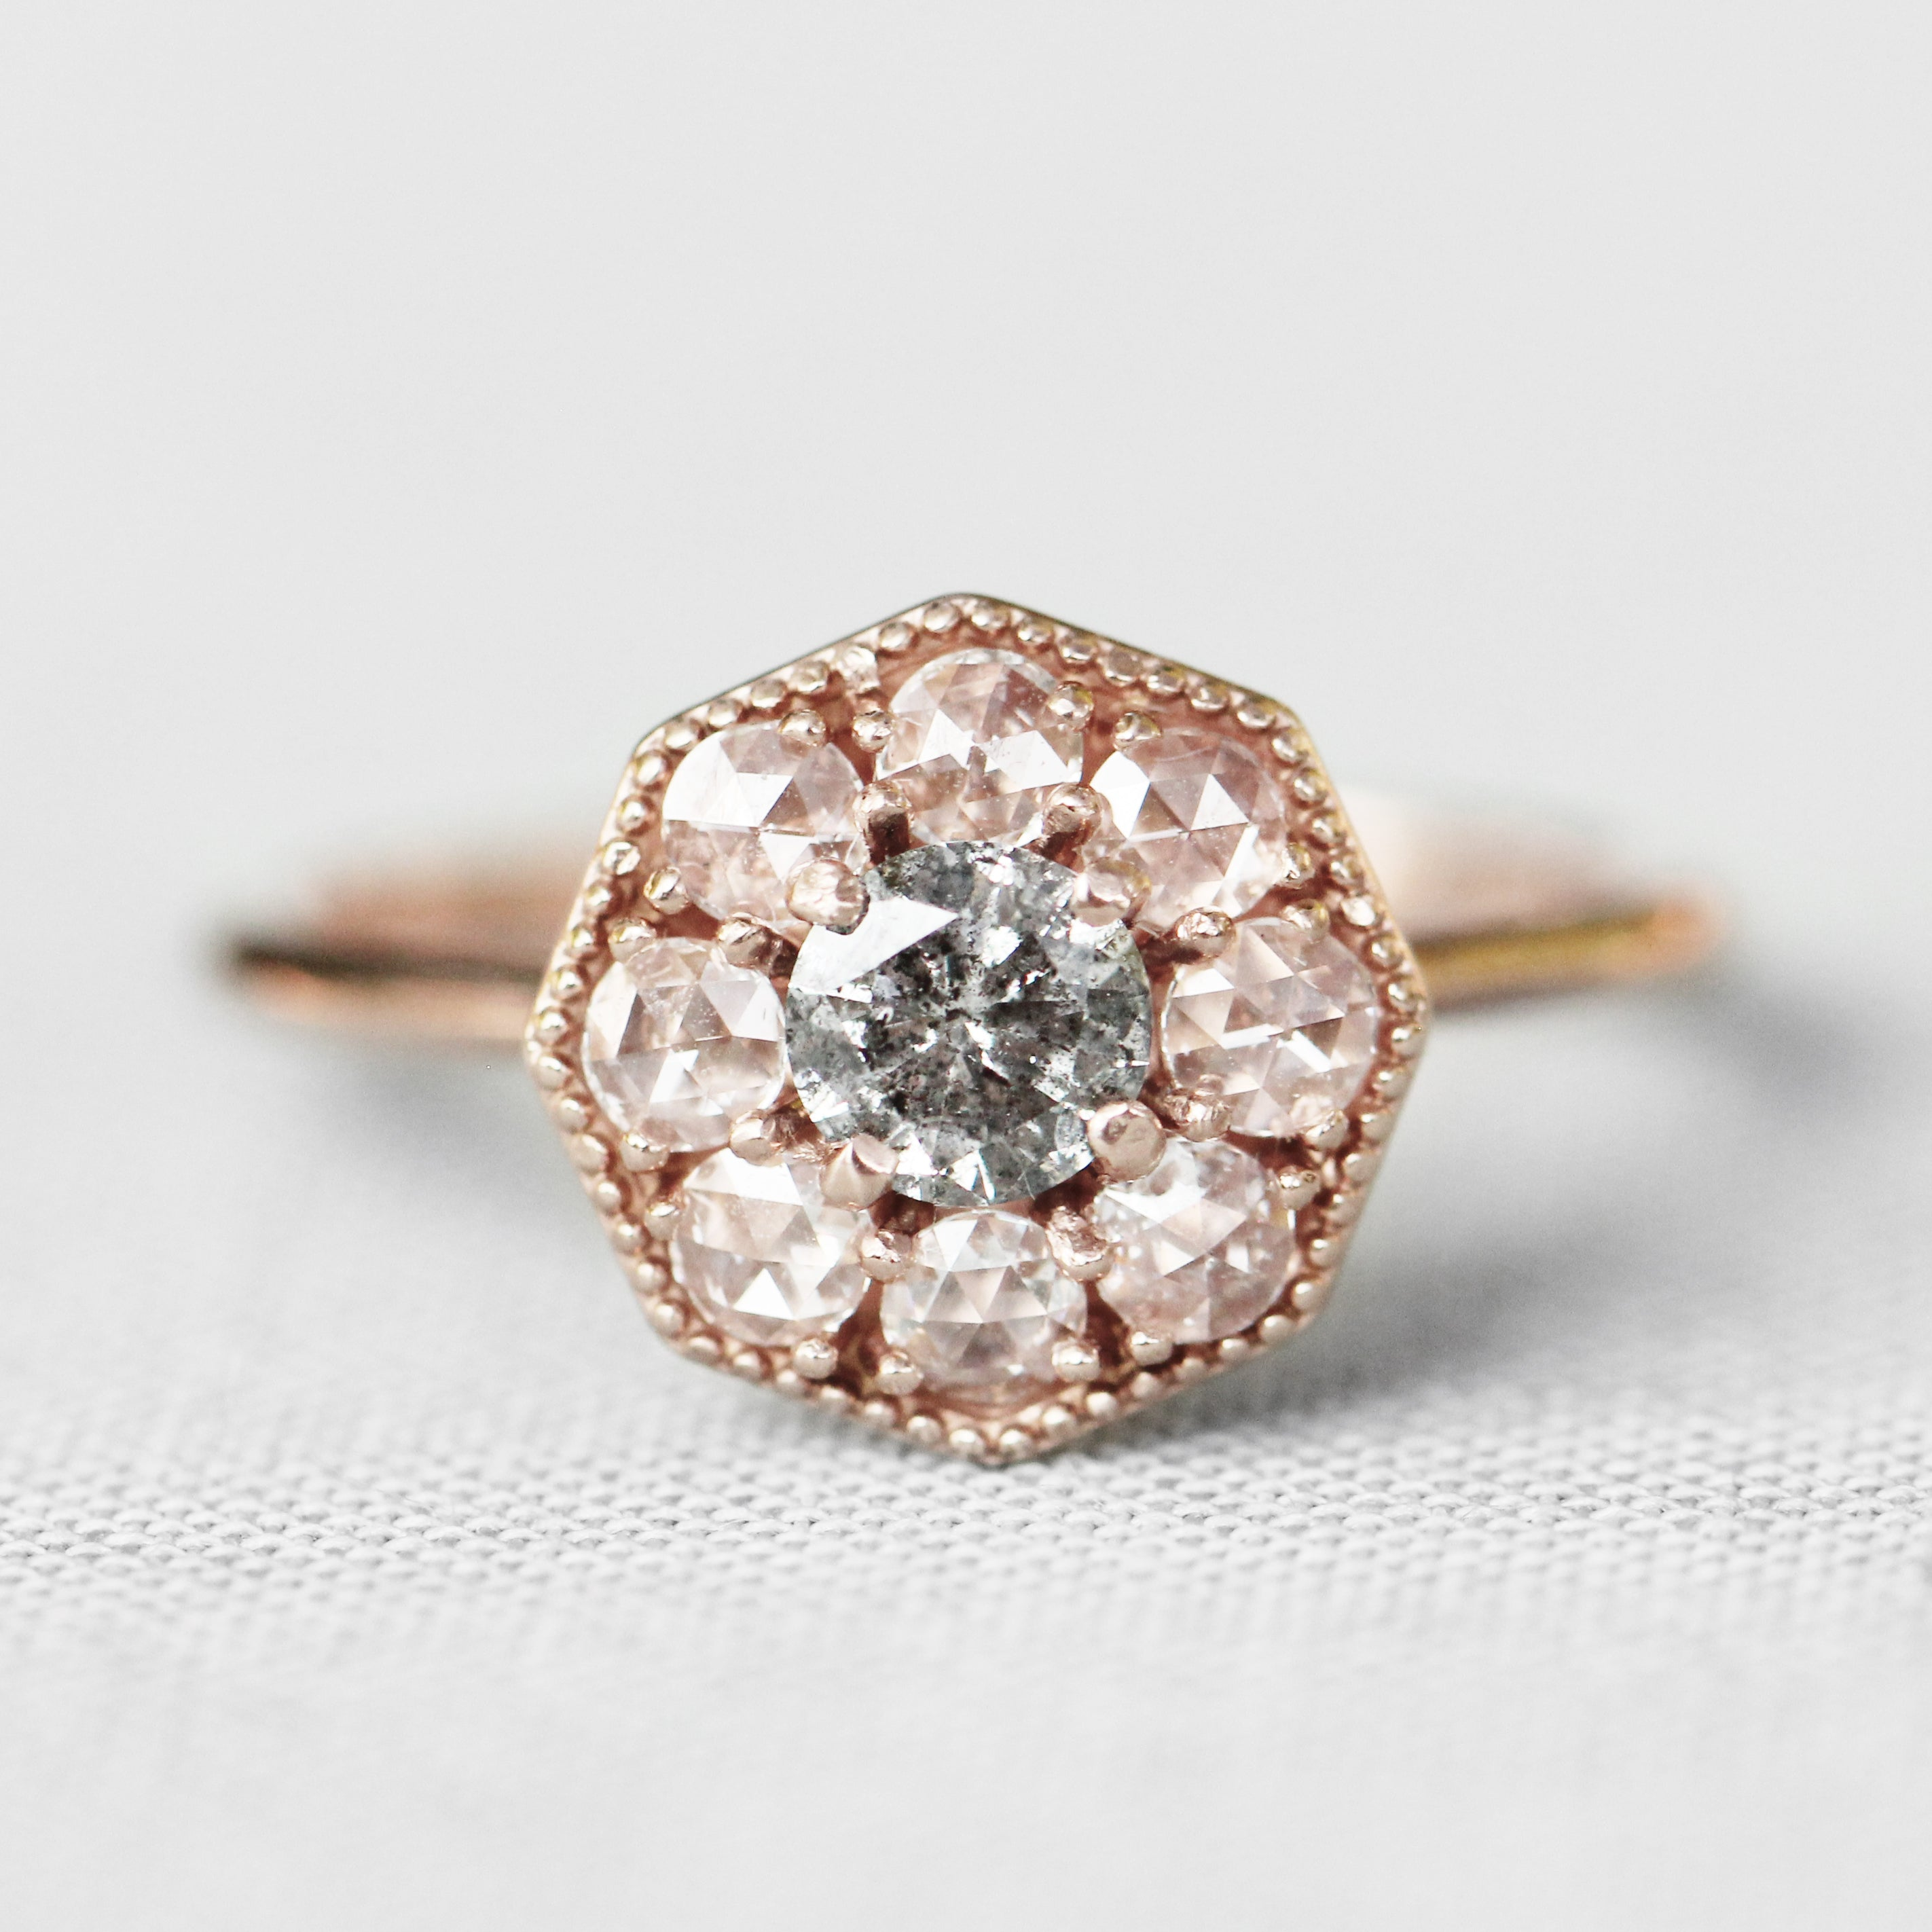 Ethel Ring with a Celestial Diamond in Your Choice of 14k Gold - Made to Order - Celestial Diamonds ® by Midwinter Co.